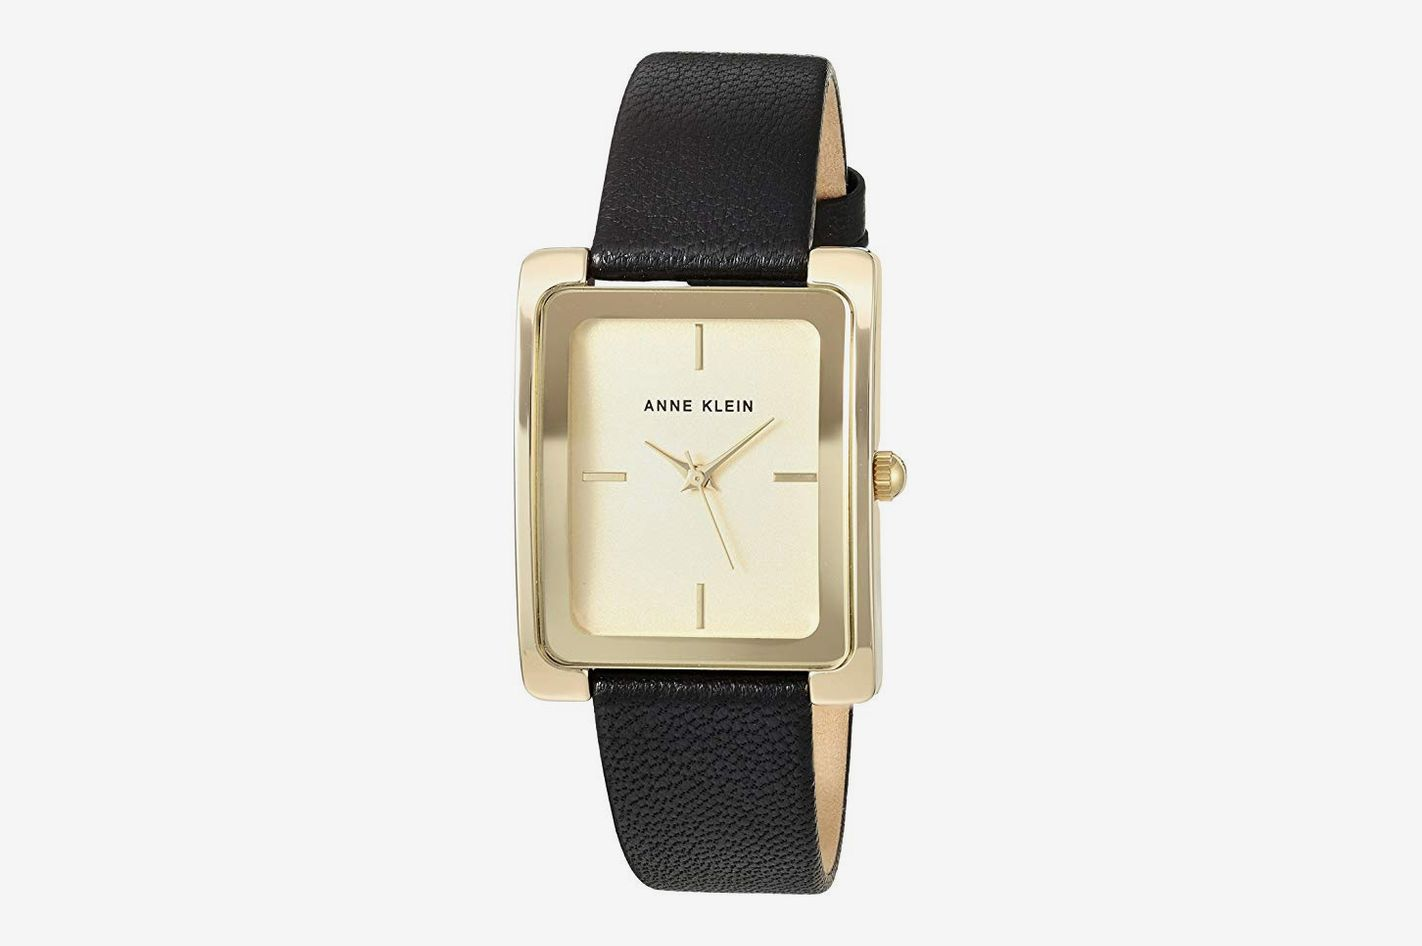 Anne Klein Women's Gold-Tone and Black Leather Strap Watch